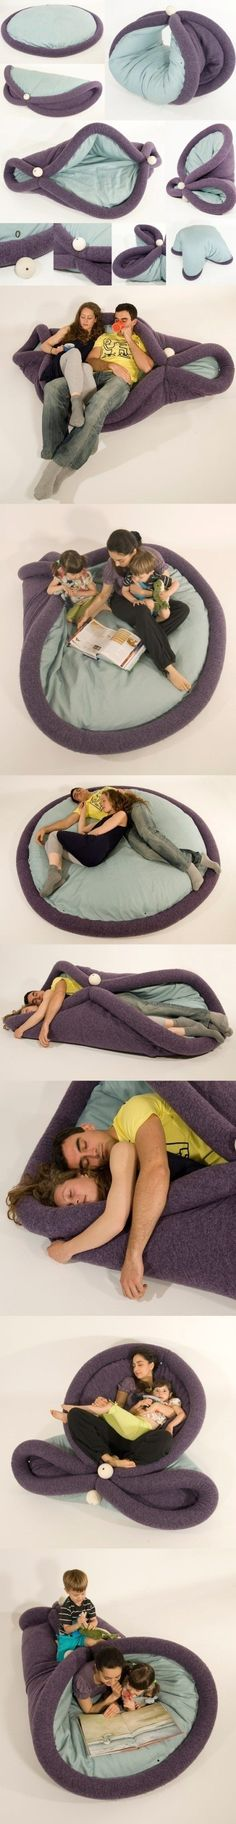 Lovely idea, like a soft furniture!